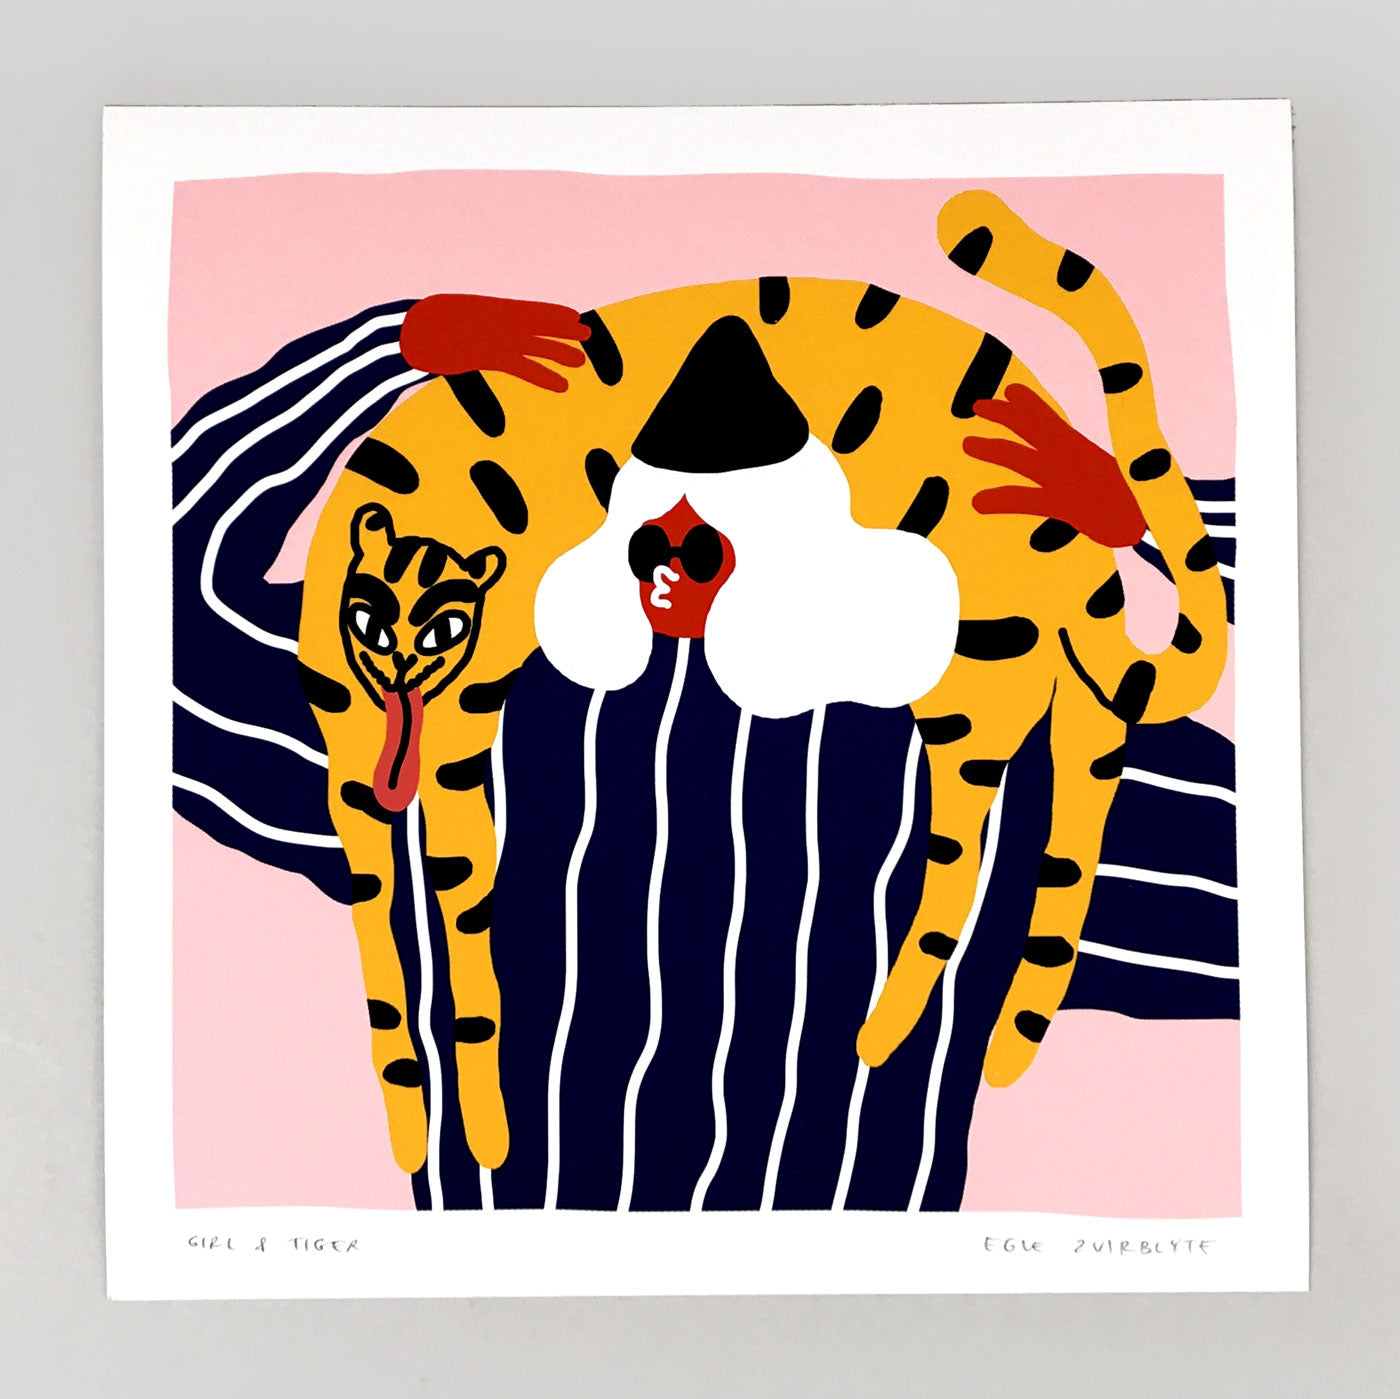 Girl With Tiger giclee print by Egle Zvirblyte